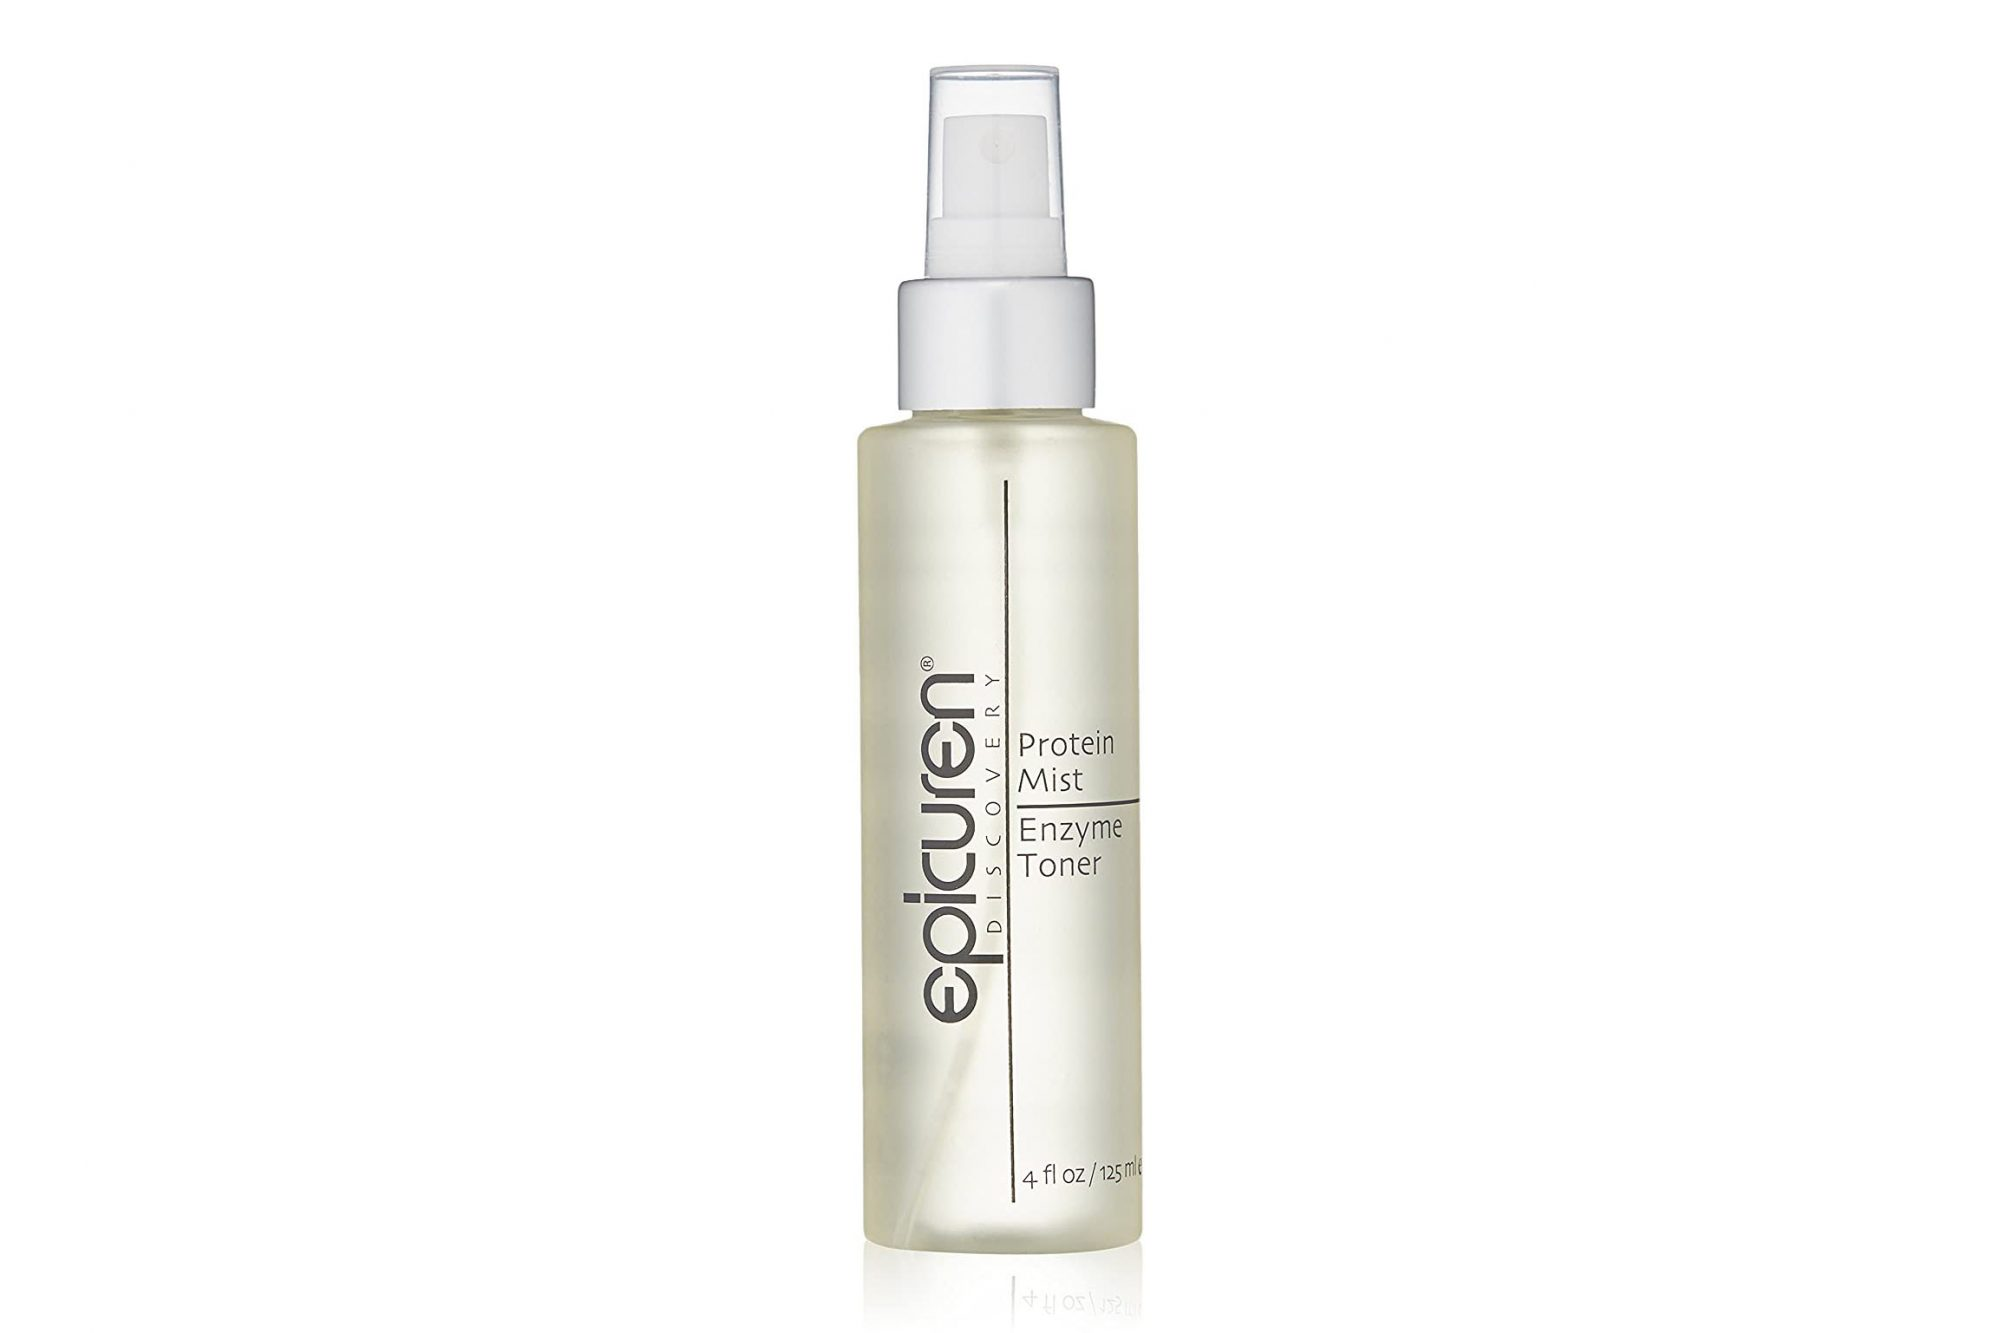 dehydrated skin Epicurean toner mist